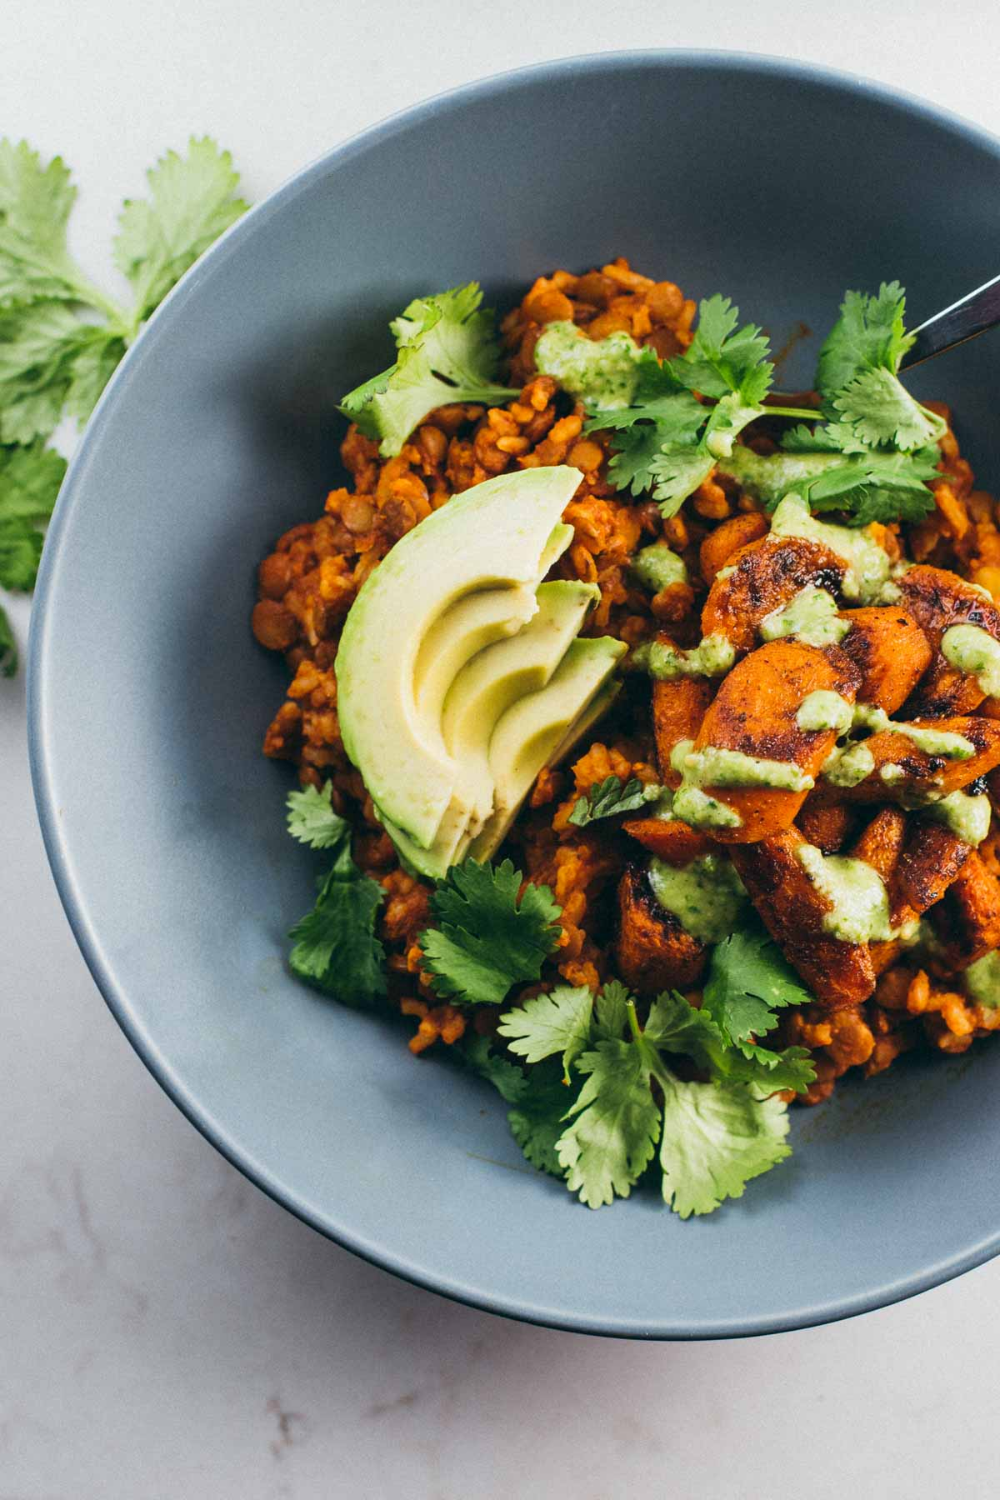 and Lentil Curry Bowls with Cilantro Cashew Sauce These Lentil Curry Bowls have roasted carrots, sliced avocado, and a creamy cilantro cashew sauce. Powerhouse comfort food! | These Lentil Curry Bowls have roasted carrots, sliced avocado, and a creamy cilantro cashew sauce. Powerhouse comfort food! |